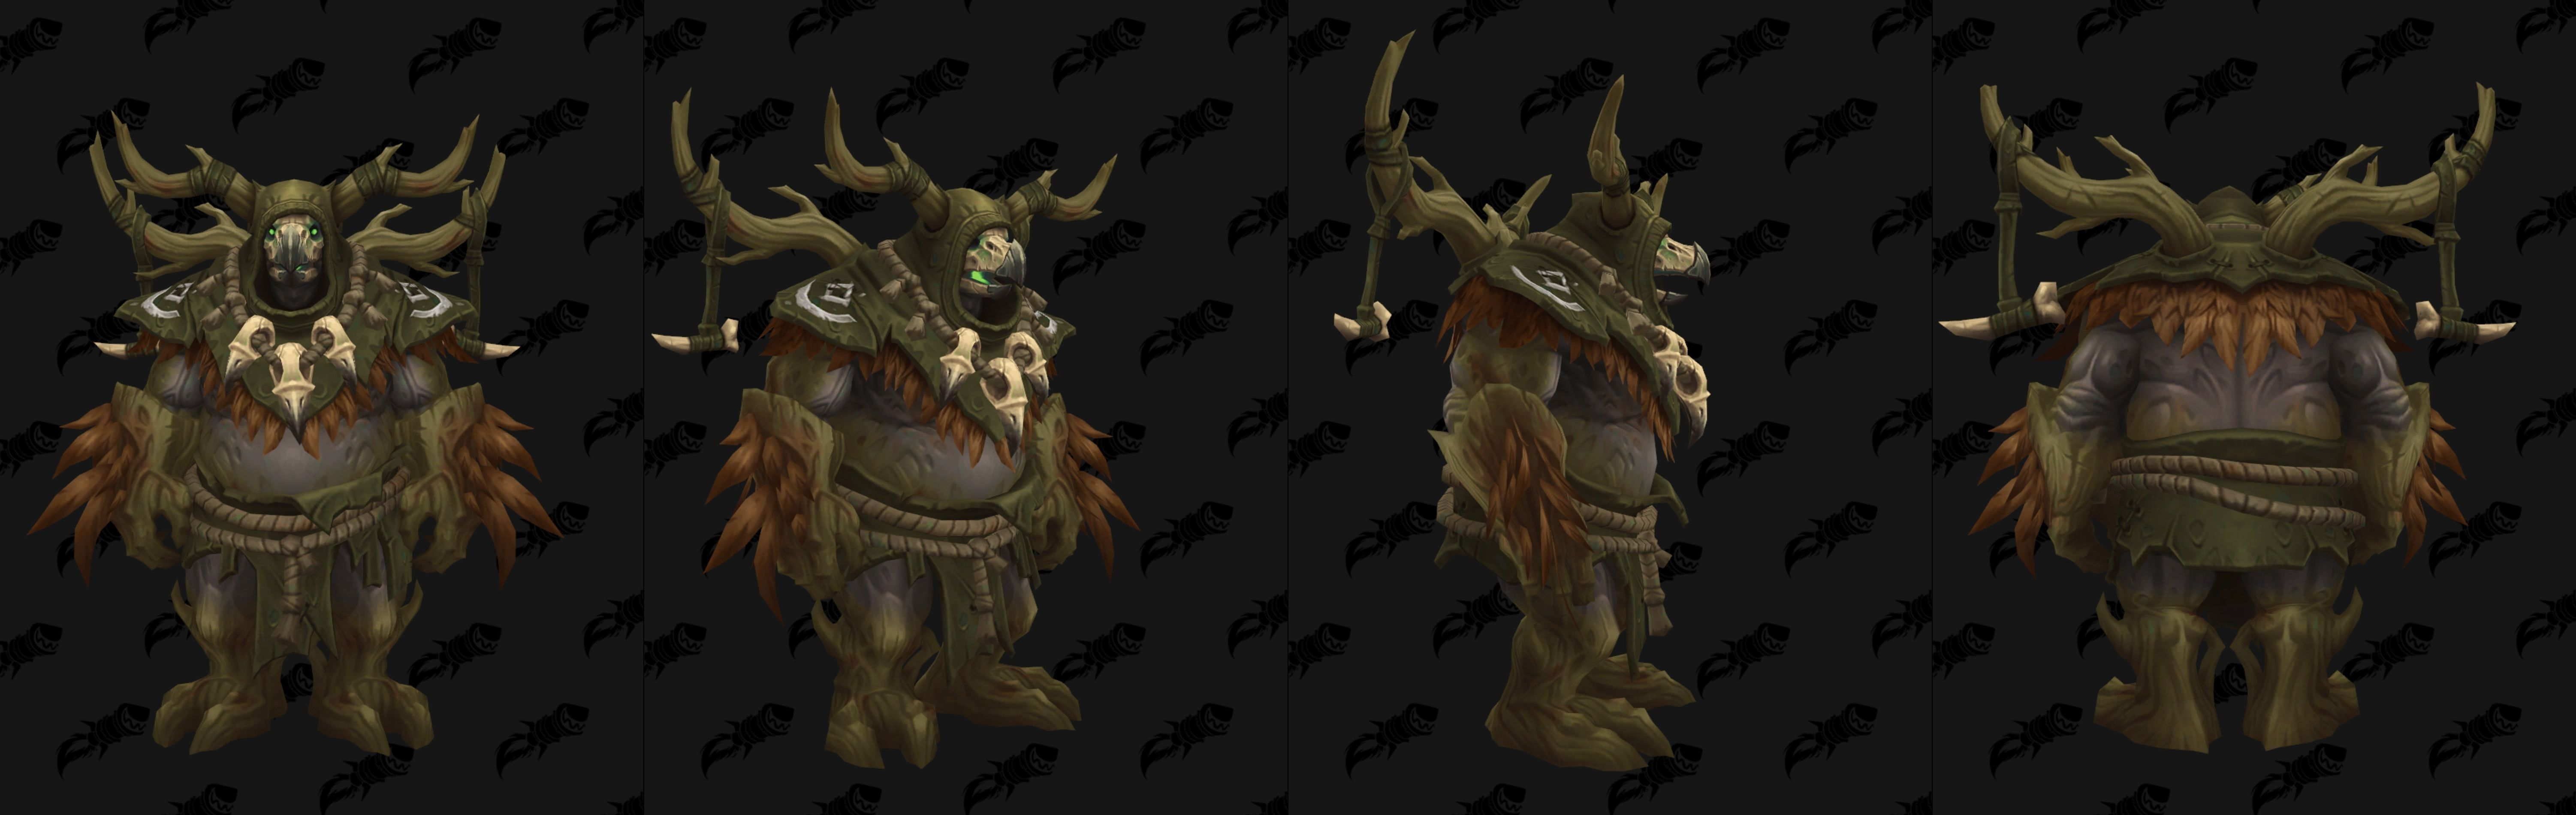 WoW Moonkin Form Kul Tiran 2